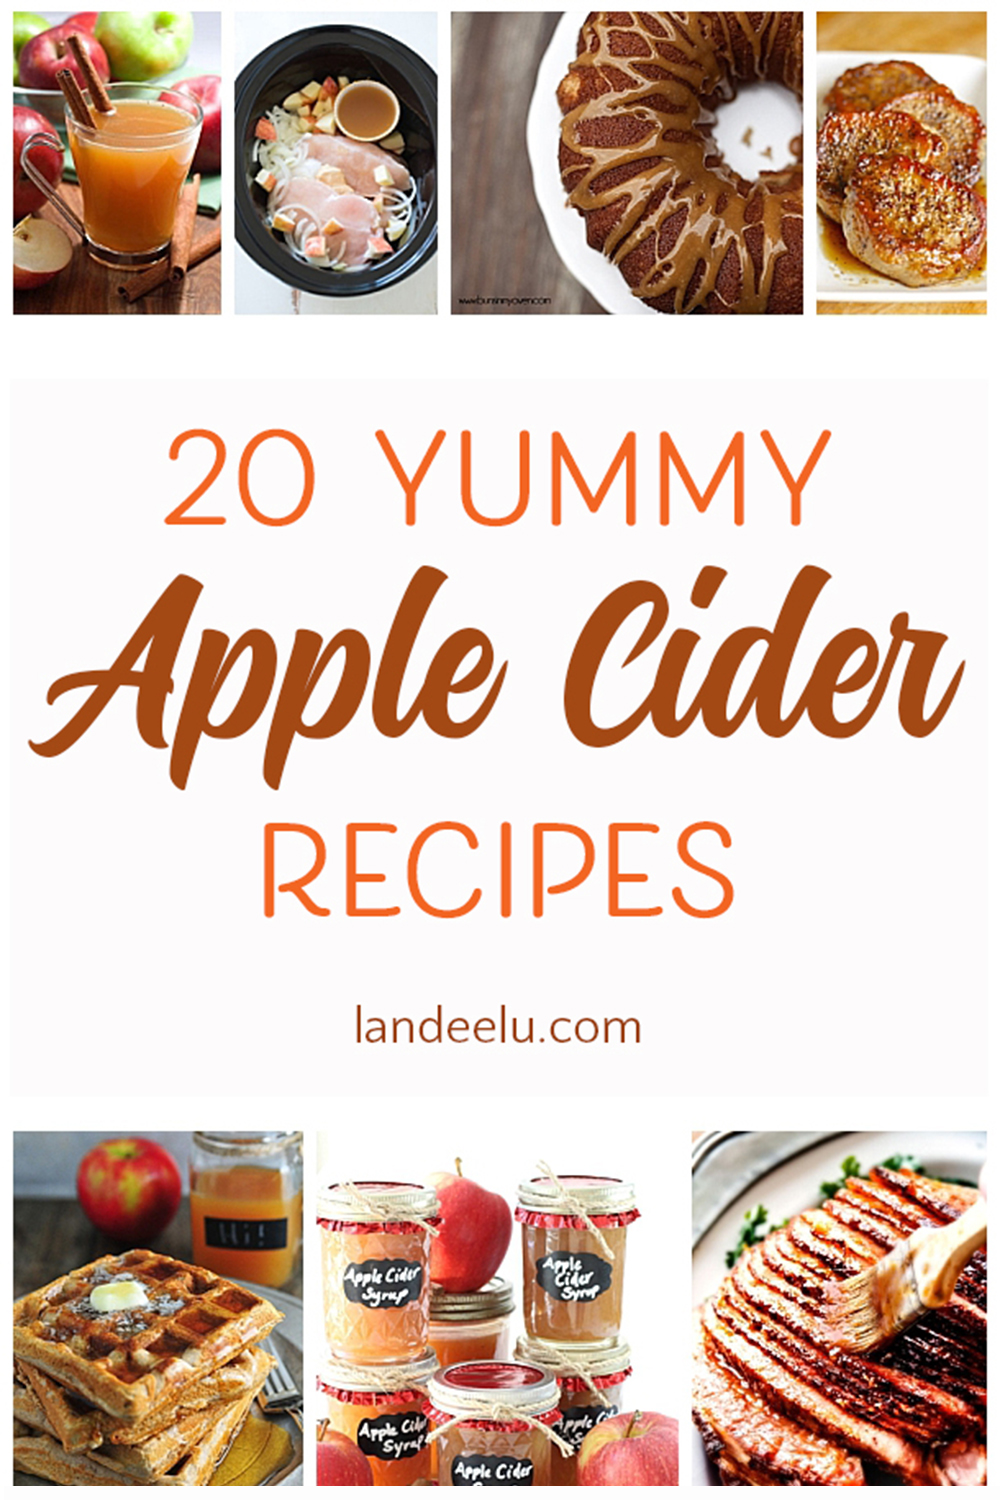 Apple cider flavored recipes to ring in the fall weather! #applecider #ciderrecipes #appleciderrecipes #fallrecipes #fall